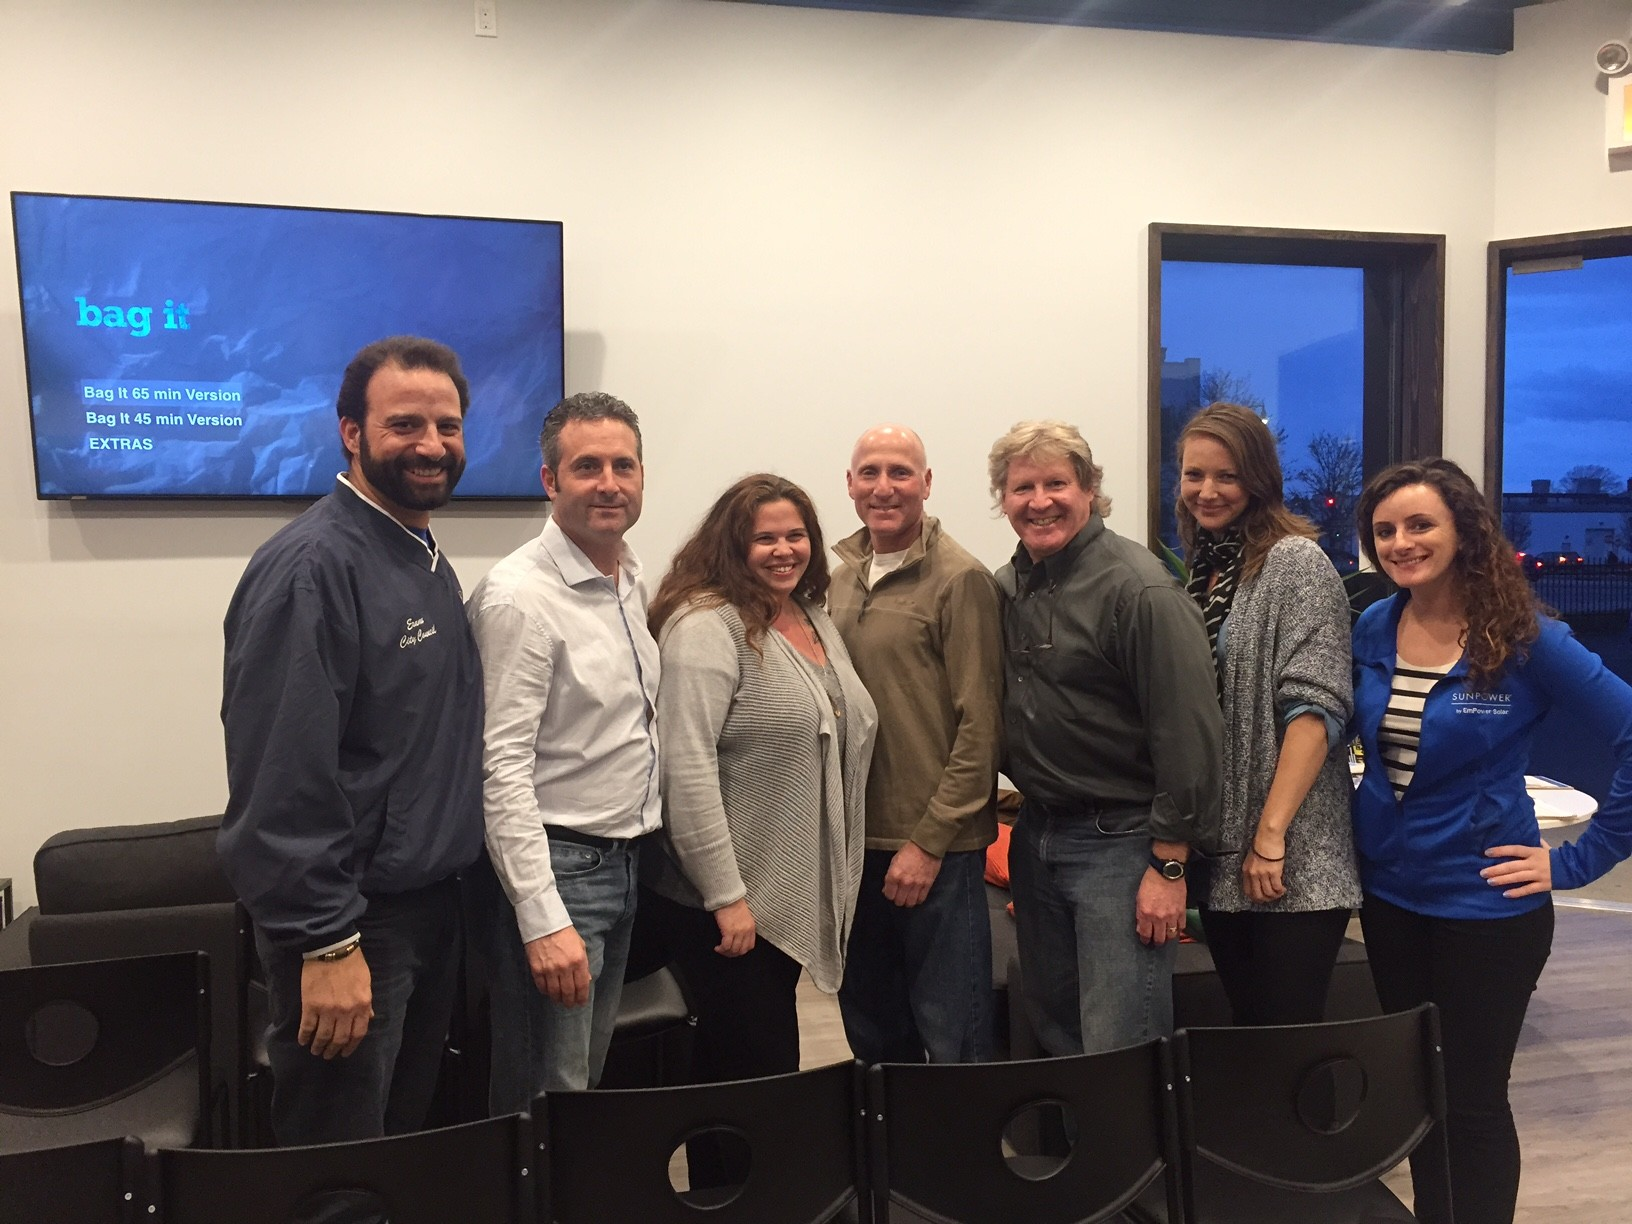 "City Council Vice President Anthony Eramo, far left, George Povall, Autumn Raubuck, Marvin Weiss, Scott Bochner, Amanda Moore and Tara Bono at a screening of the documentary film ""Bag It"" on April 1 at Bridgeworks in Long Beach. Photo by Anthony Rifilato/Herald"